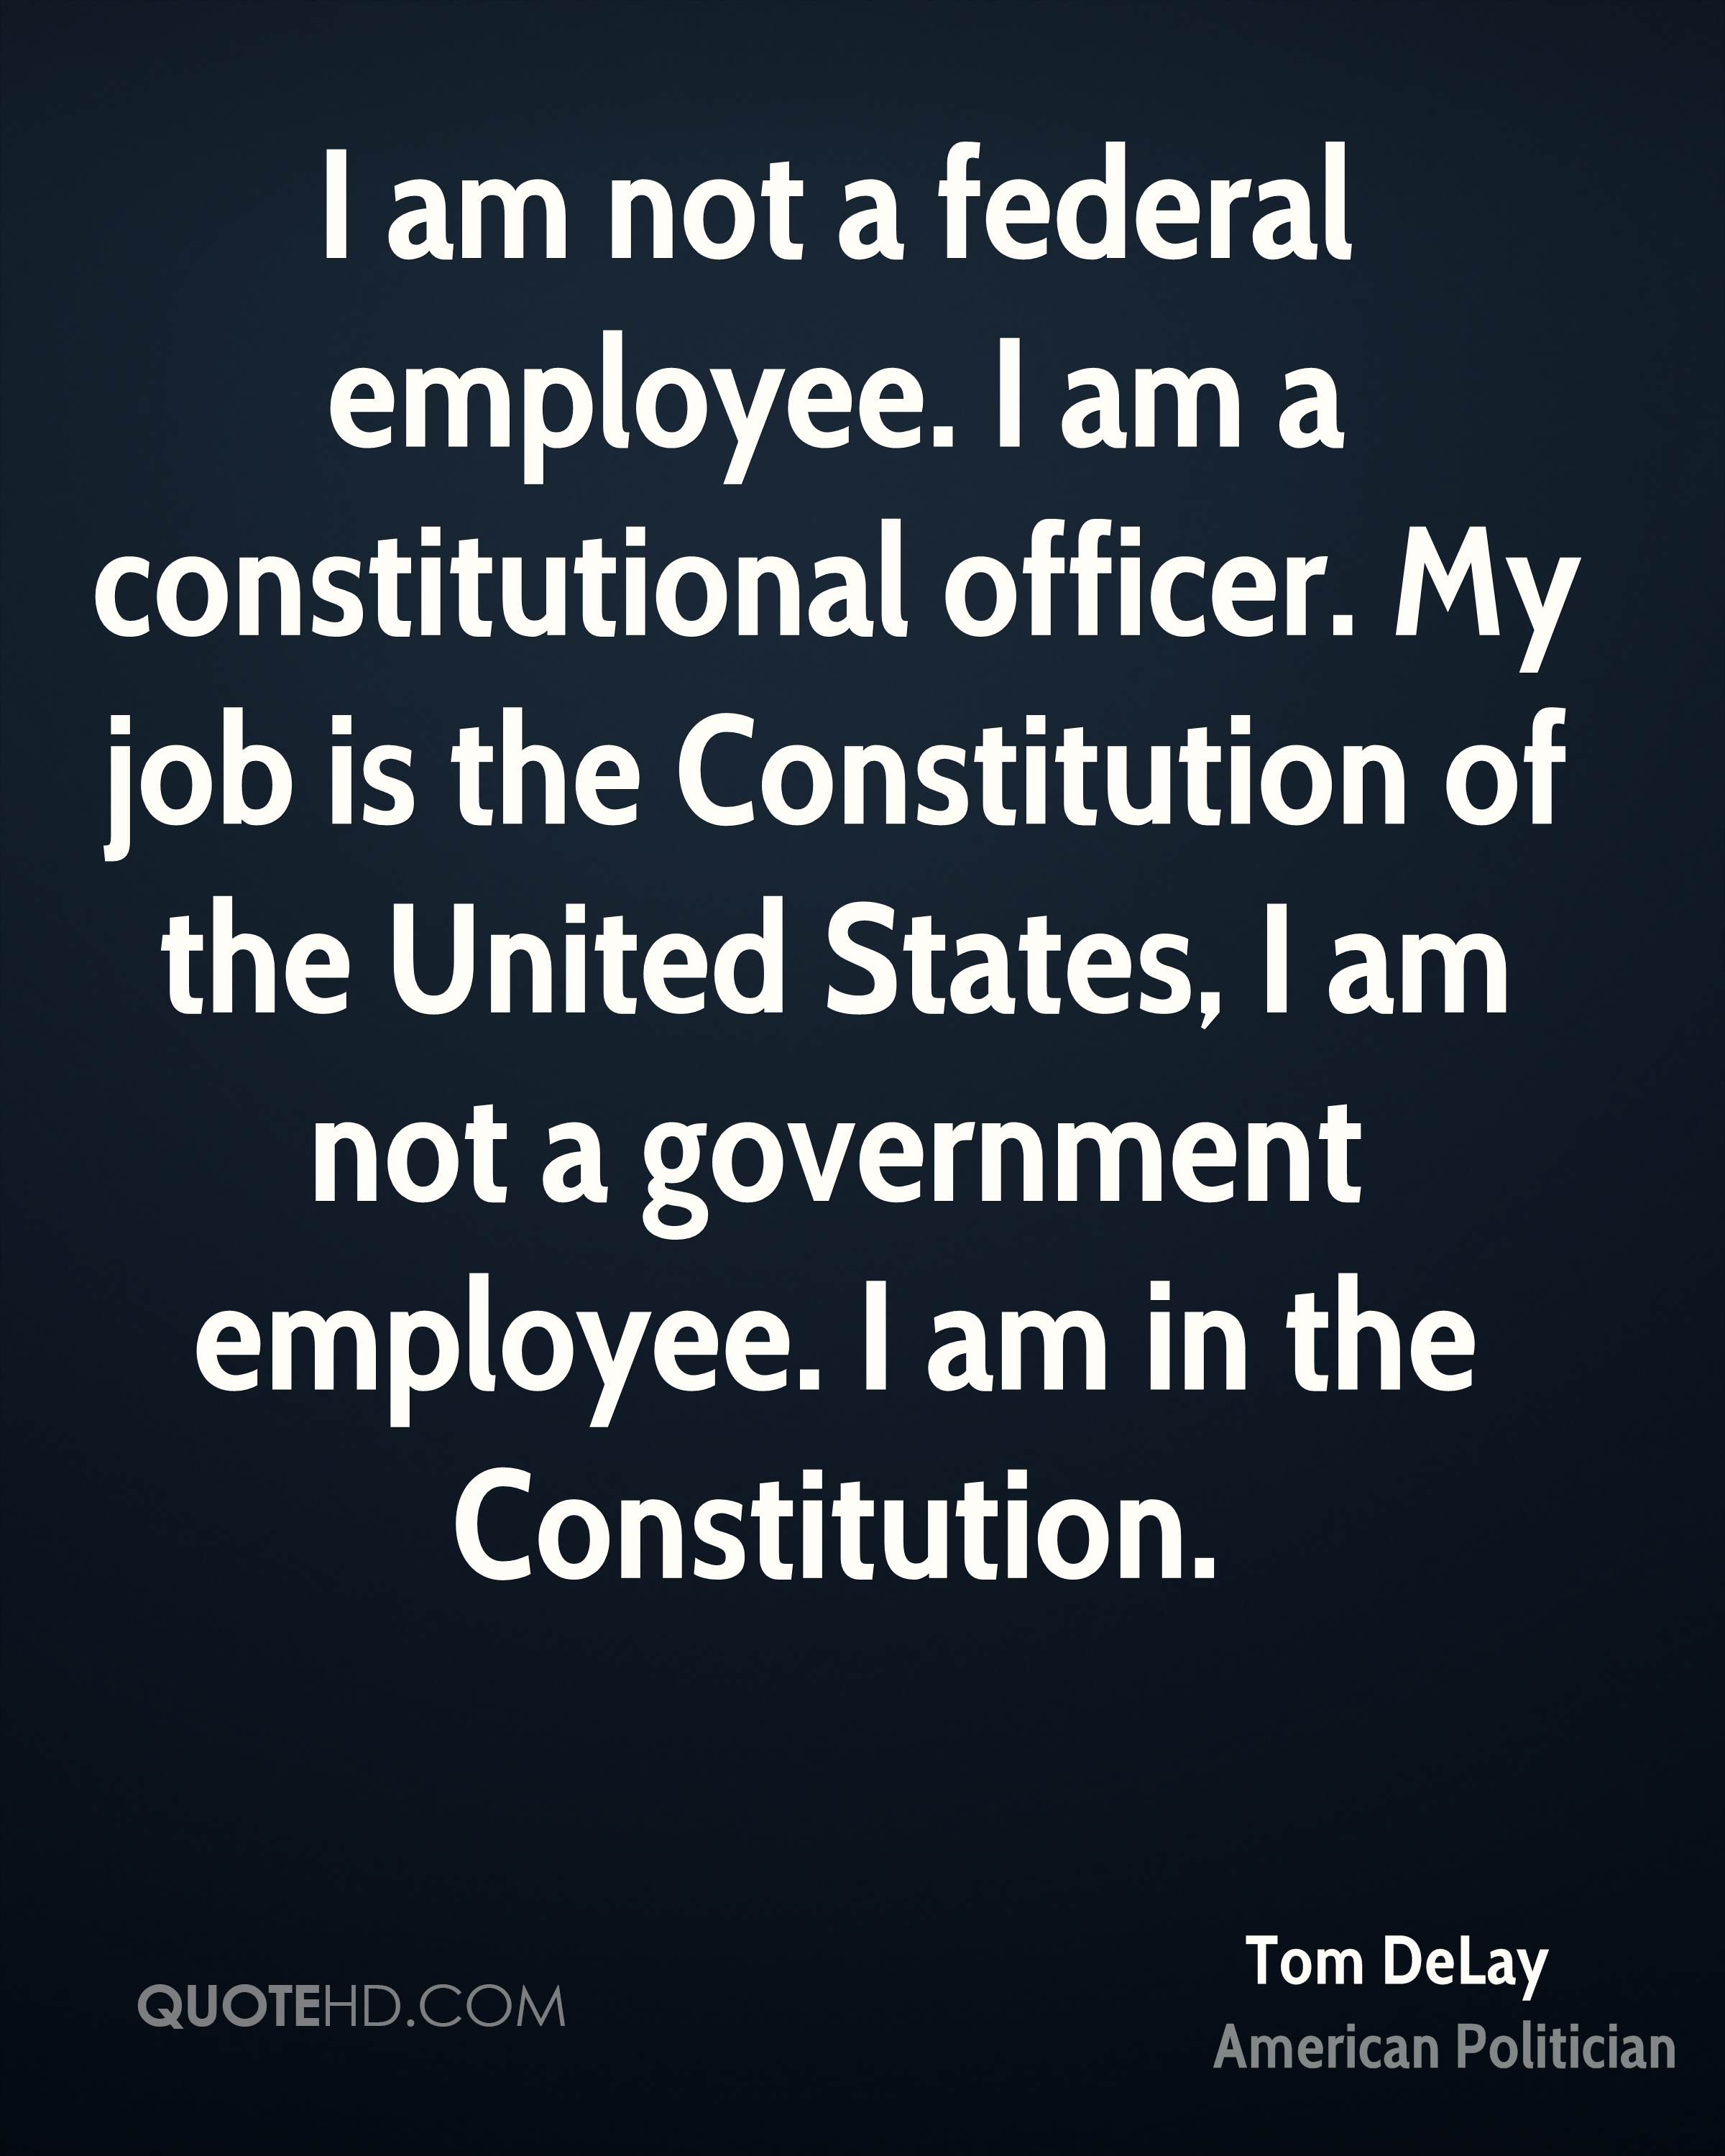 I am not a federal employee. I am a constitutional officer. My job is the Constitution of the United States, I am not a government employee. I am in the Constitution.